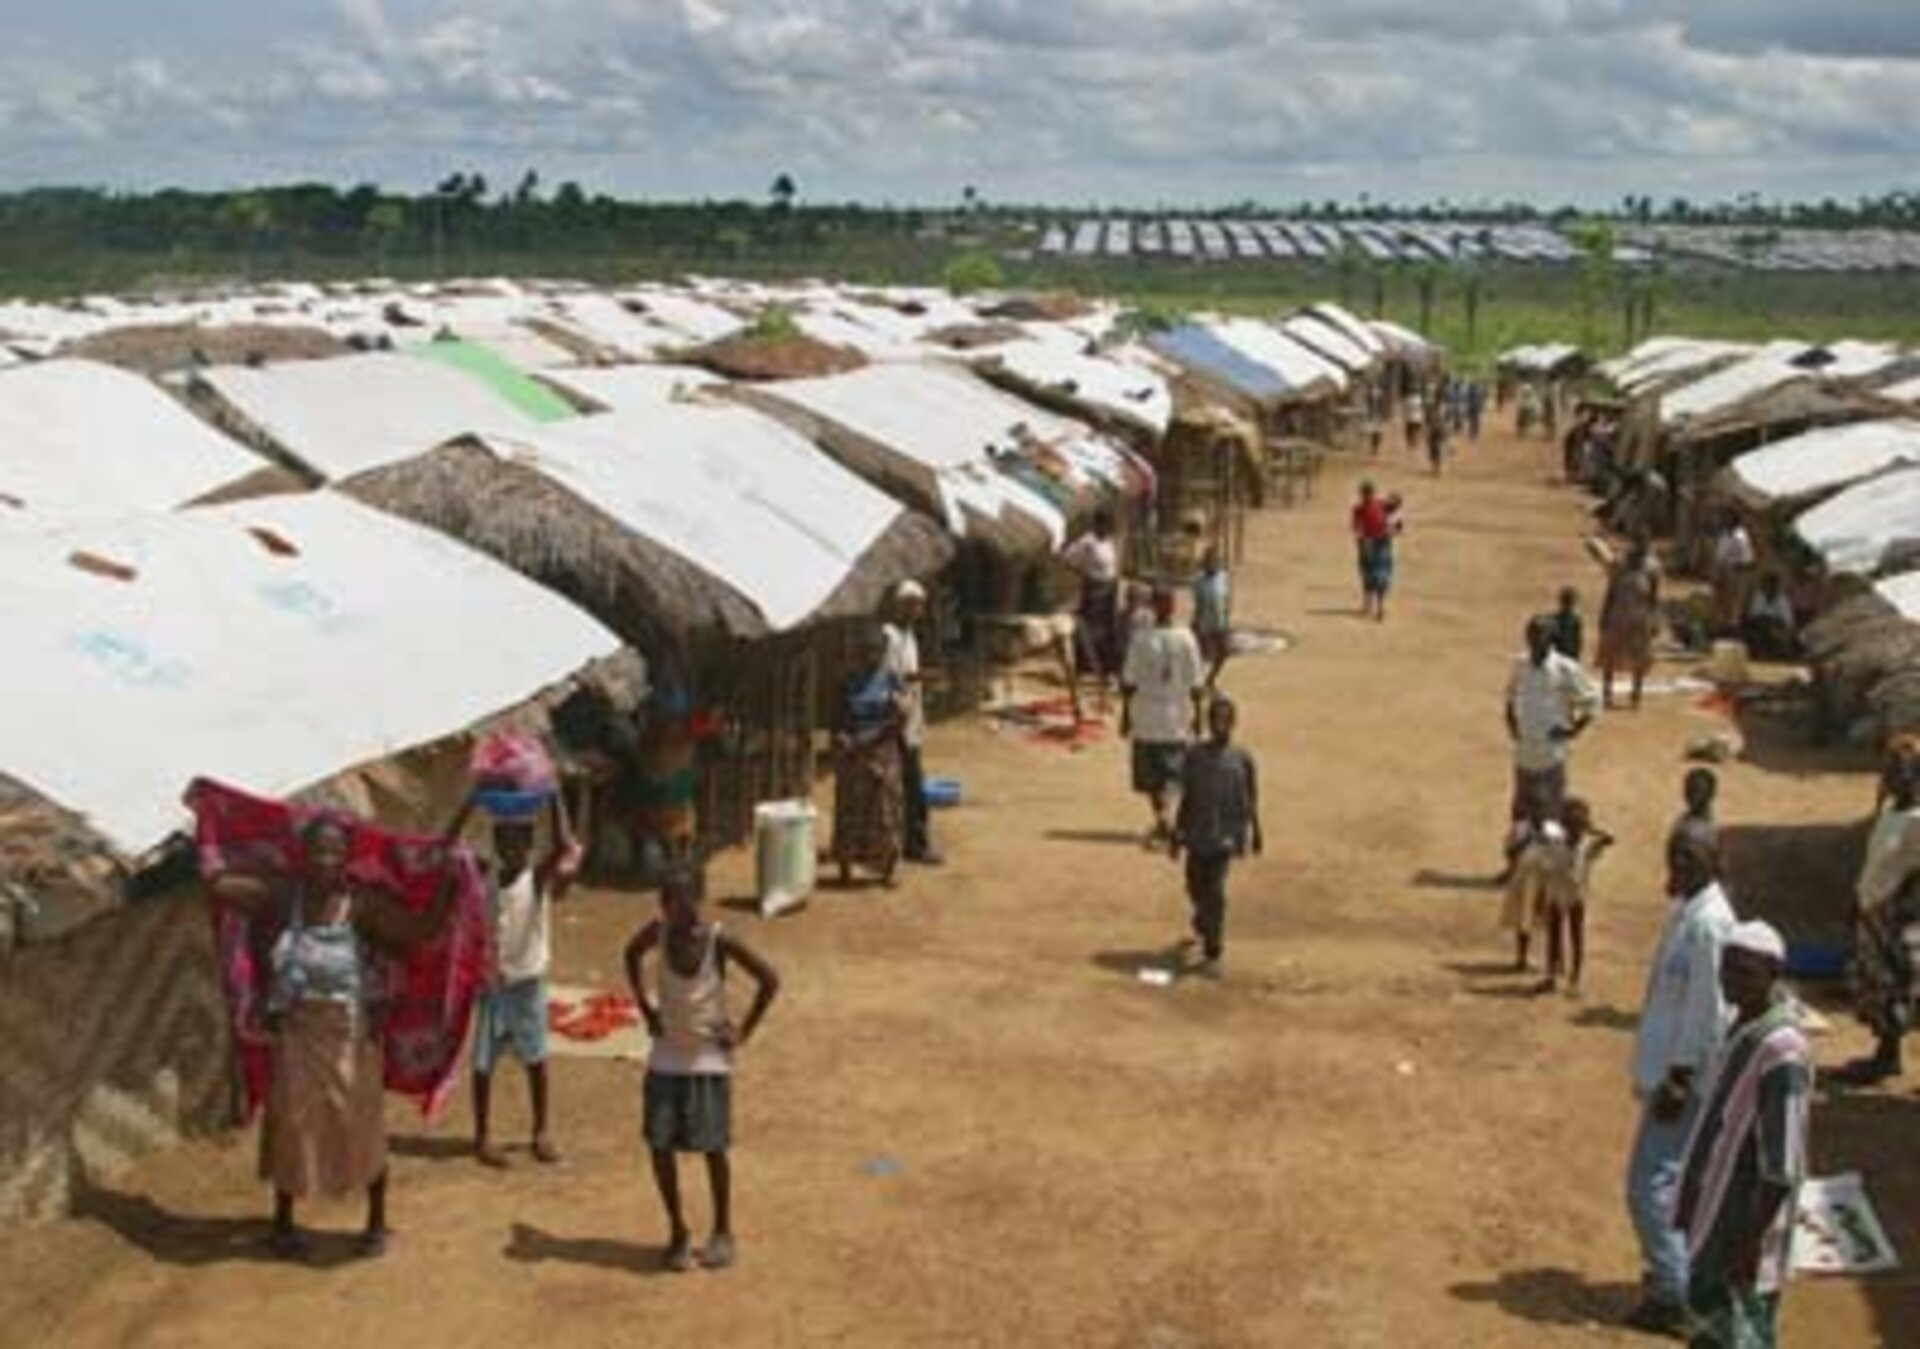 A refugee camp on the outskirts of Liberian capital Monrovia